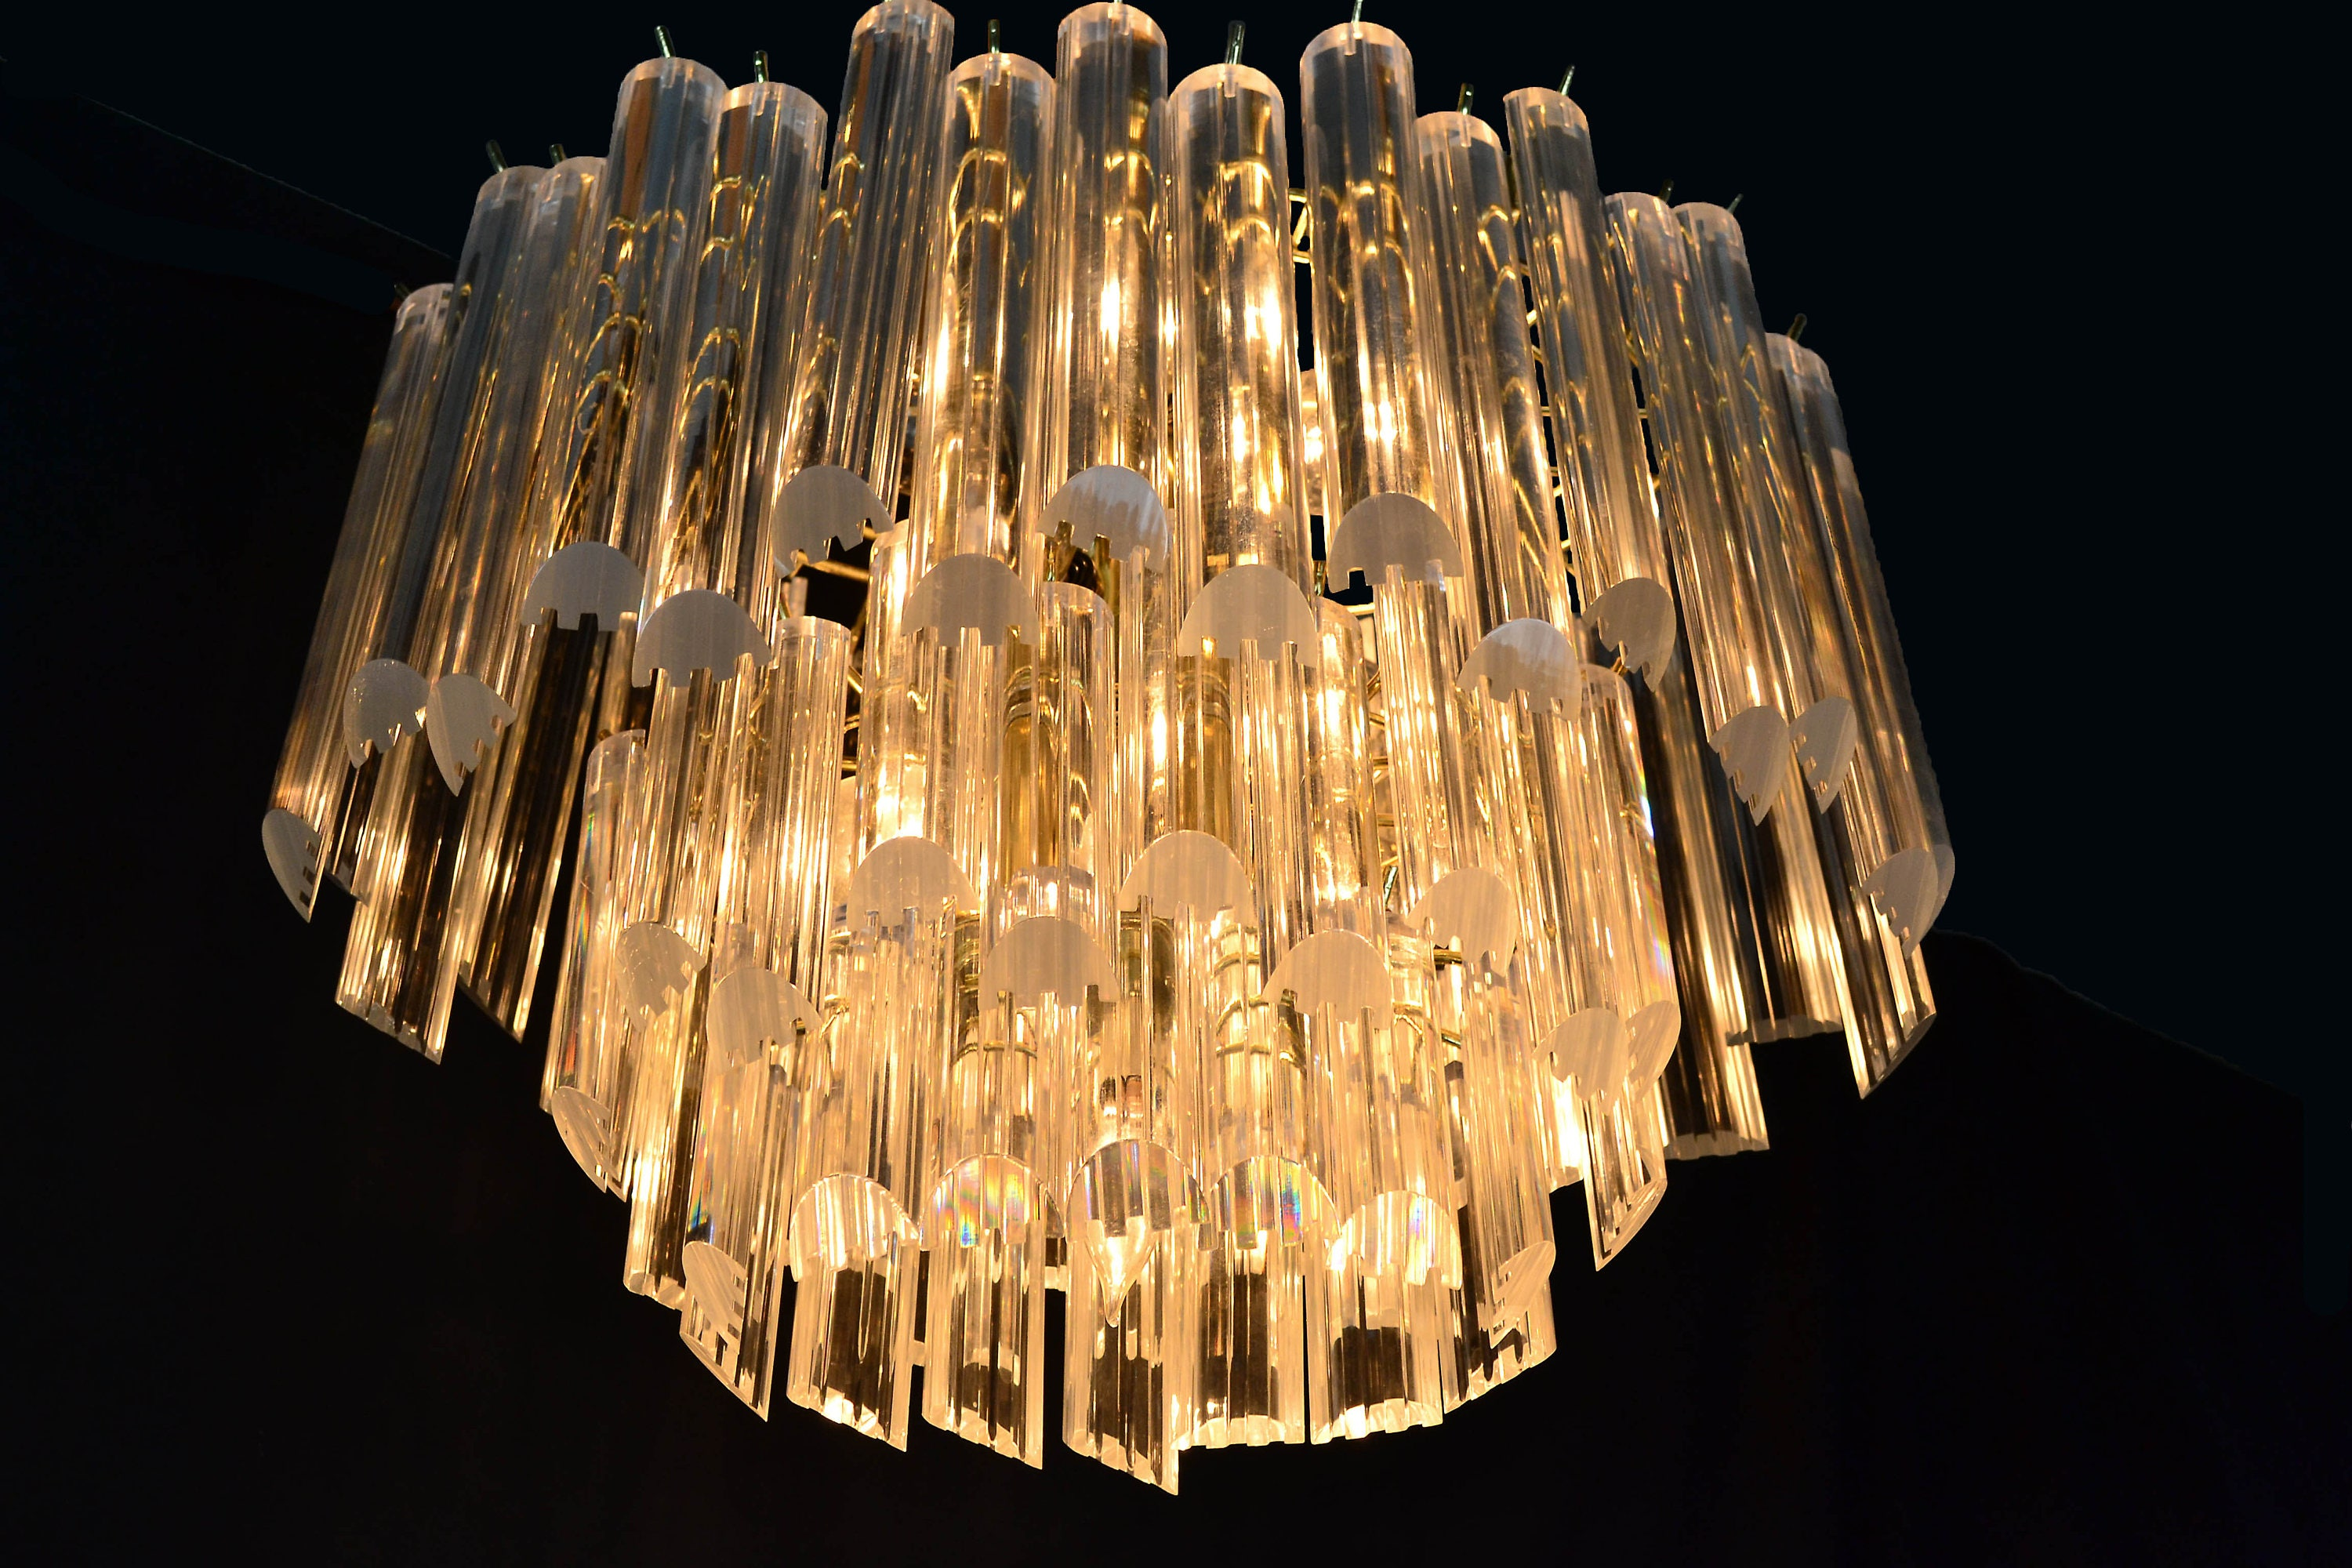 Mid century modern oval chandelier with lucite crystals 3 zoom arubaitofo Image collections